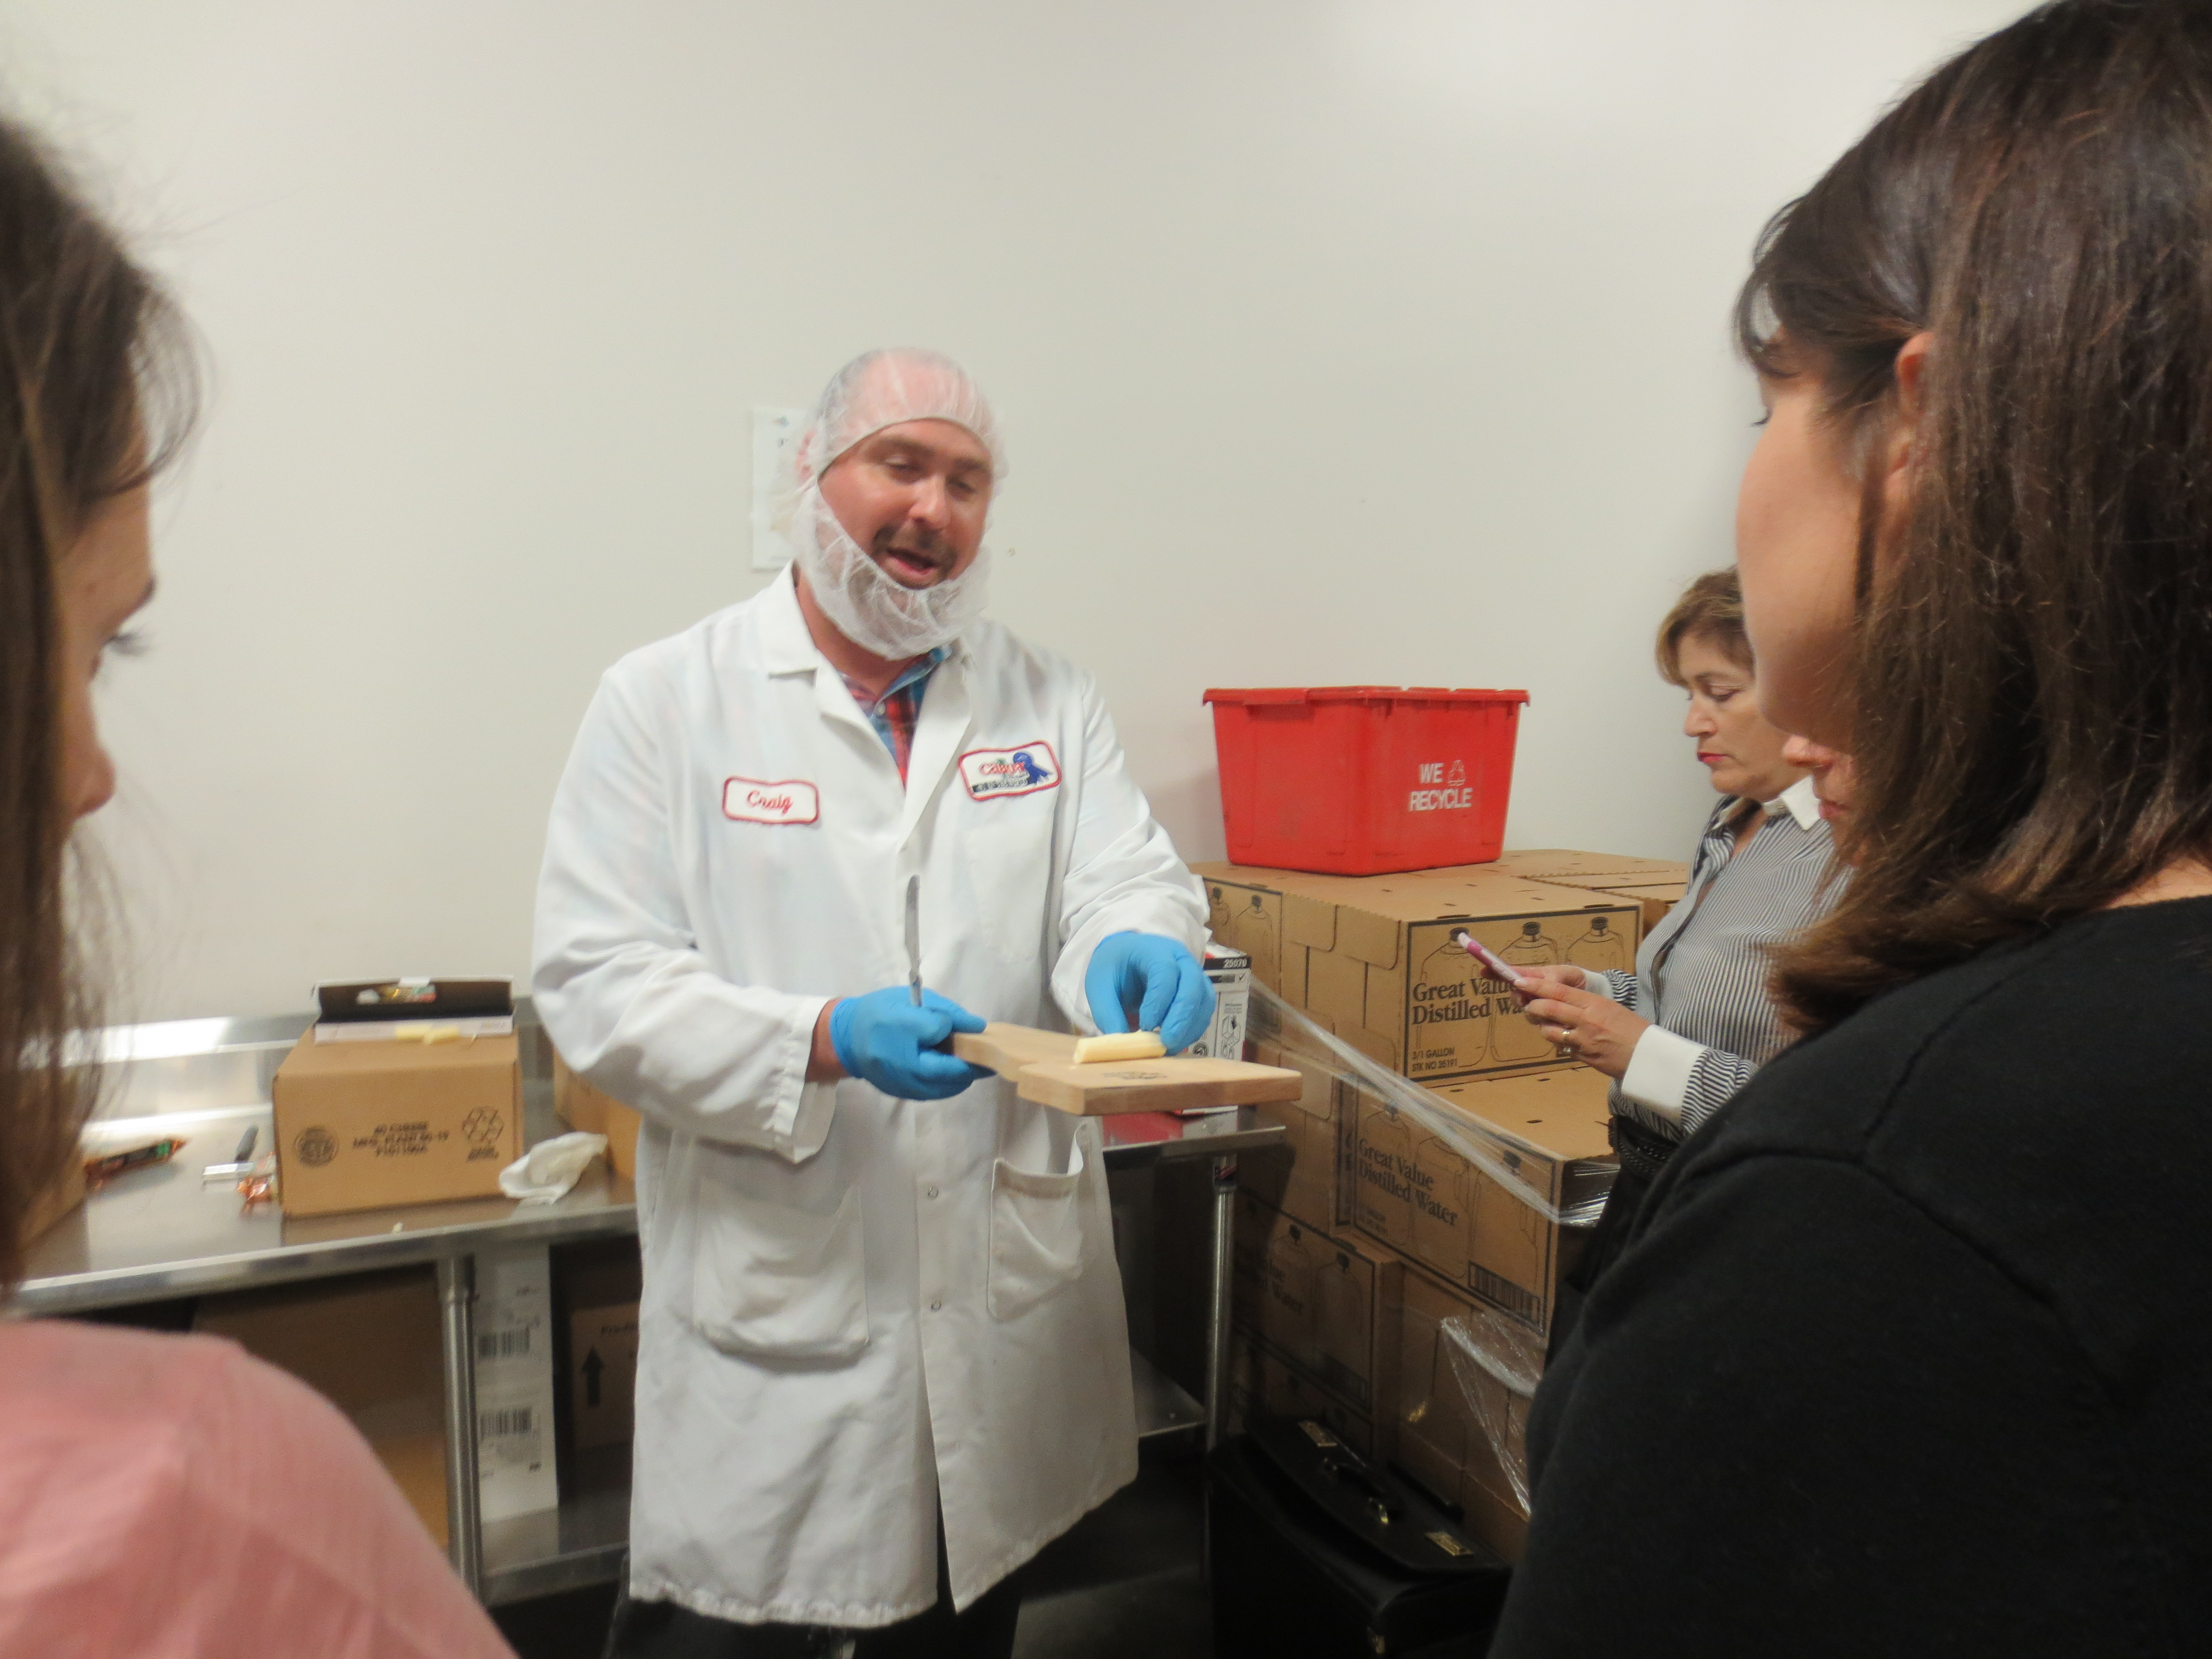 Meeting Cabot's cheese grader Craig Giles. Cheese grading is a pretty great job, don't you agree?